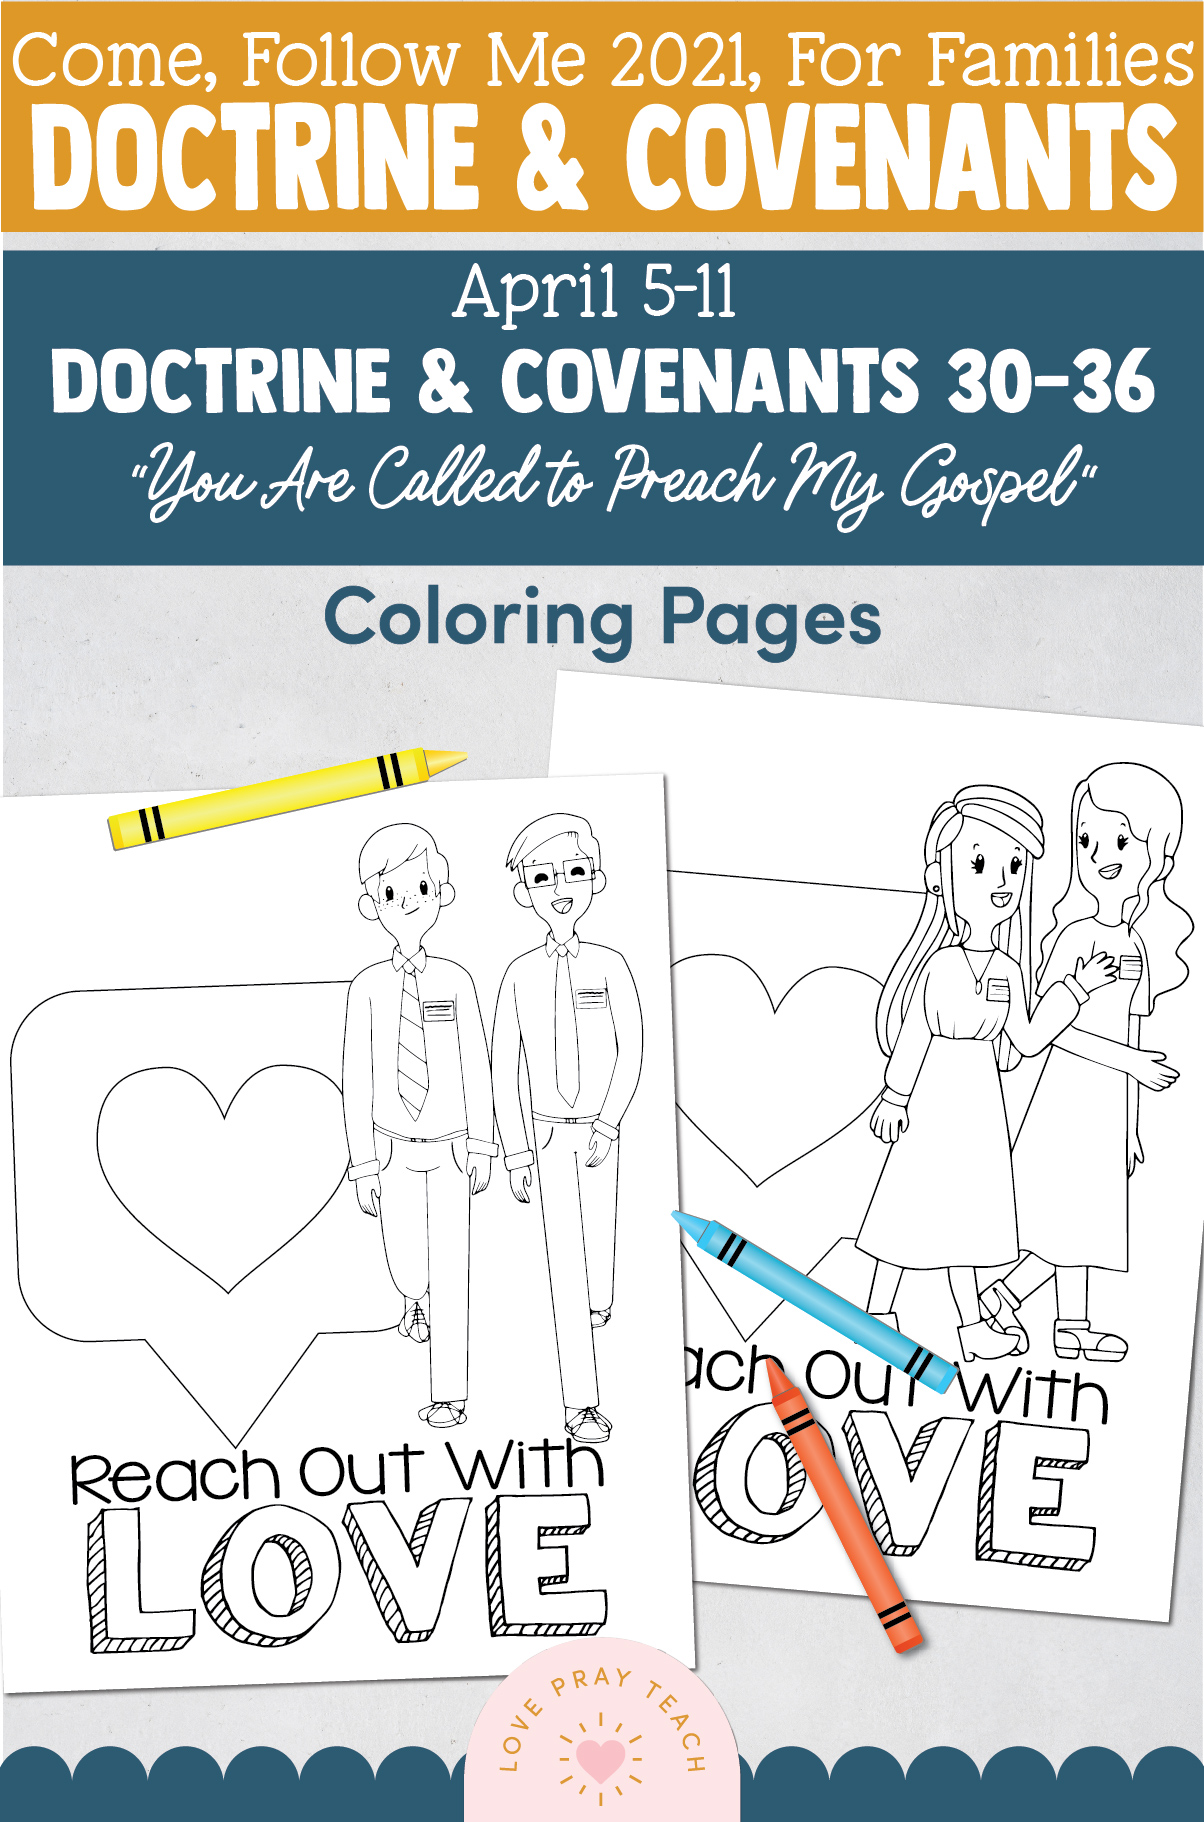 "Come, Follow Me—For Individuals and Families: Doctrine And Covenants 2021, April Week 2 Doctrine and Covenants 30-36: April 5-11,""You Are Called to Preach My Gospel"""